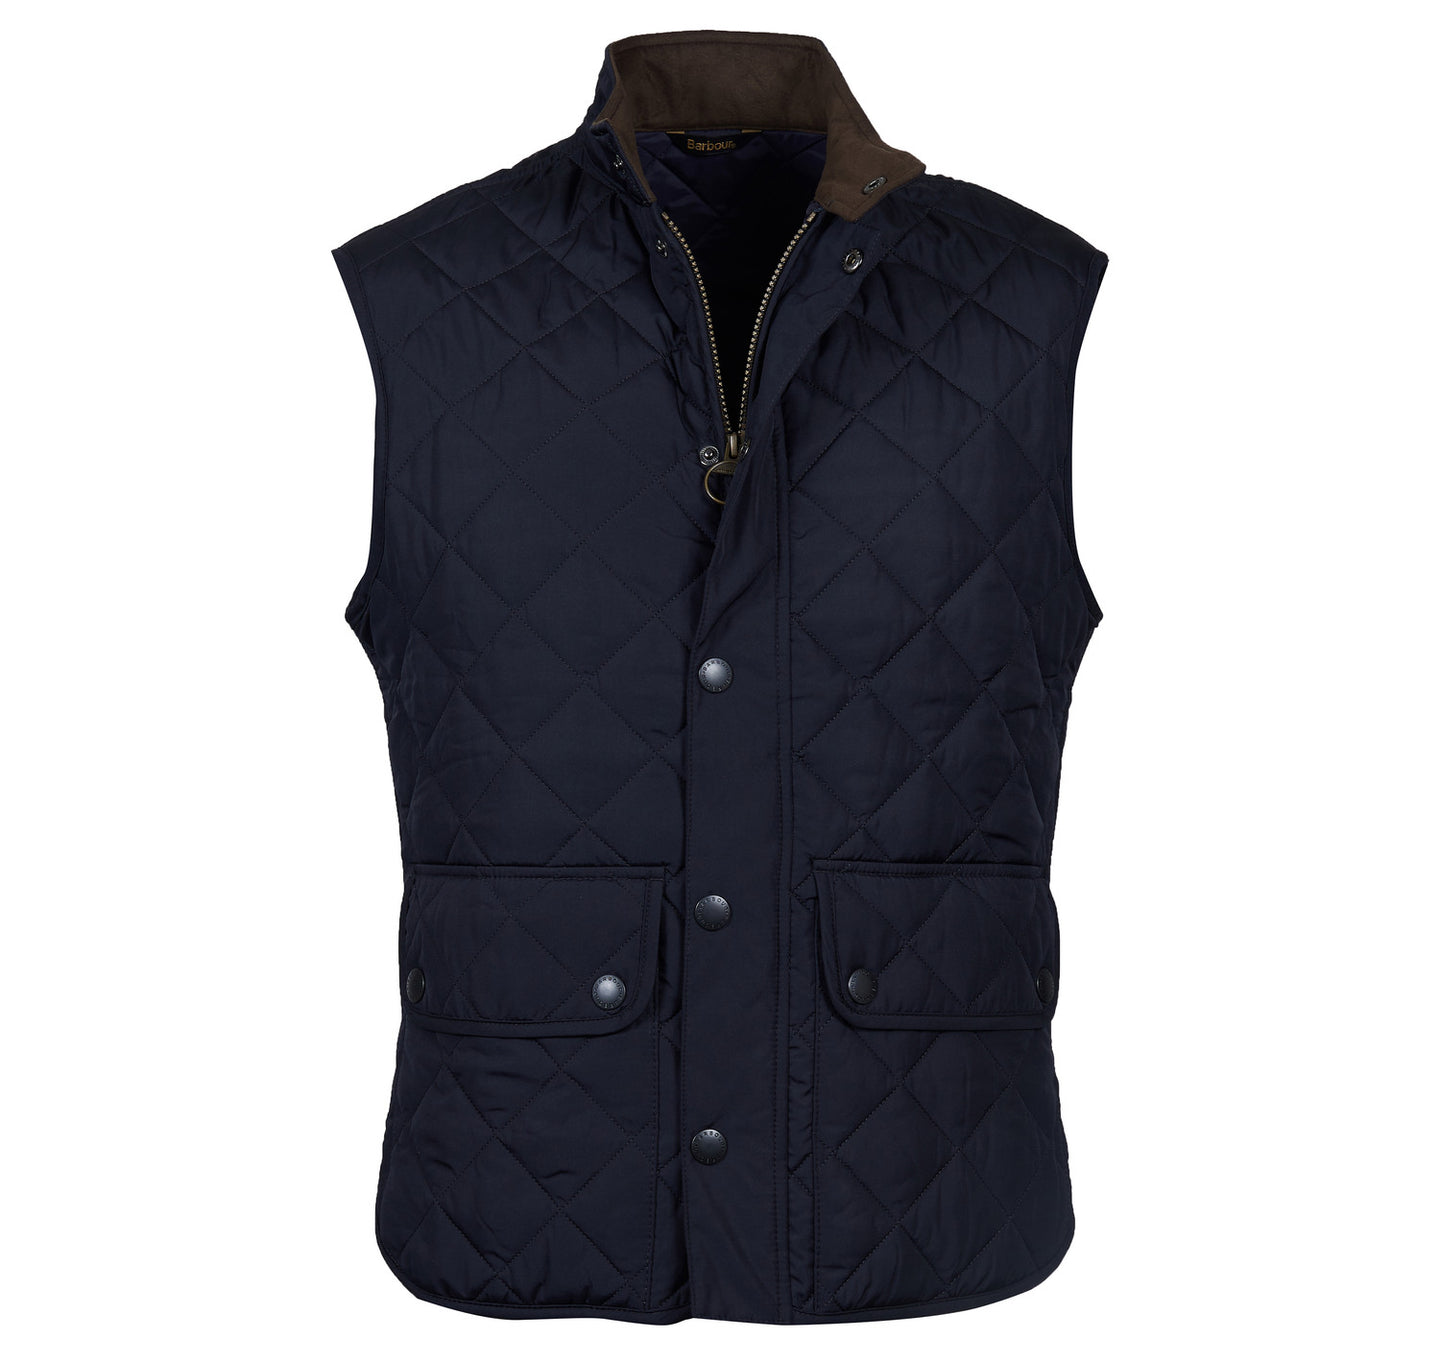 MGI0042NY71 Barbour International Men's Navy Gilet with Brown Collar for sale online ireland